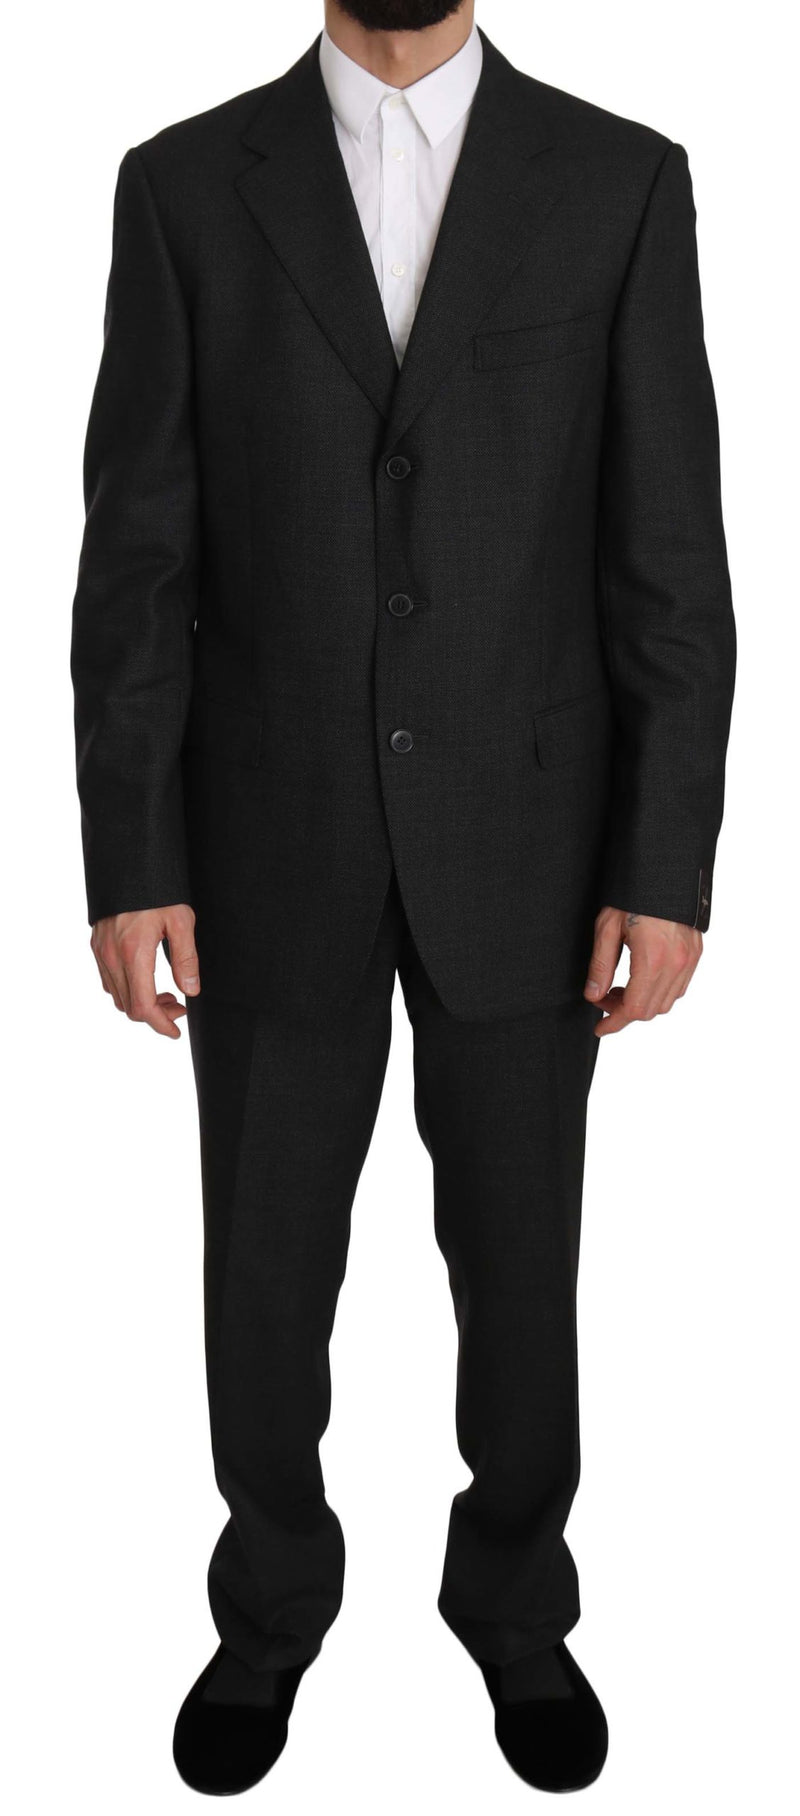 Wool Black Gray Two Piece 3 Button Suit